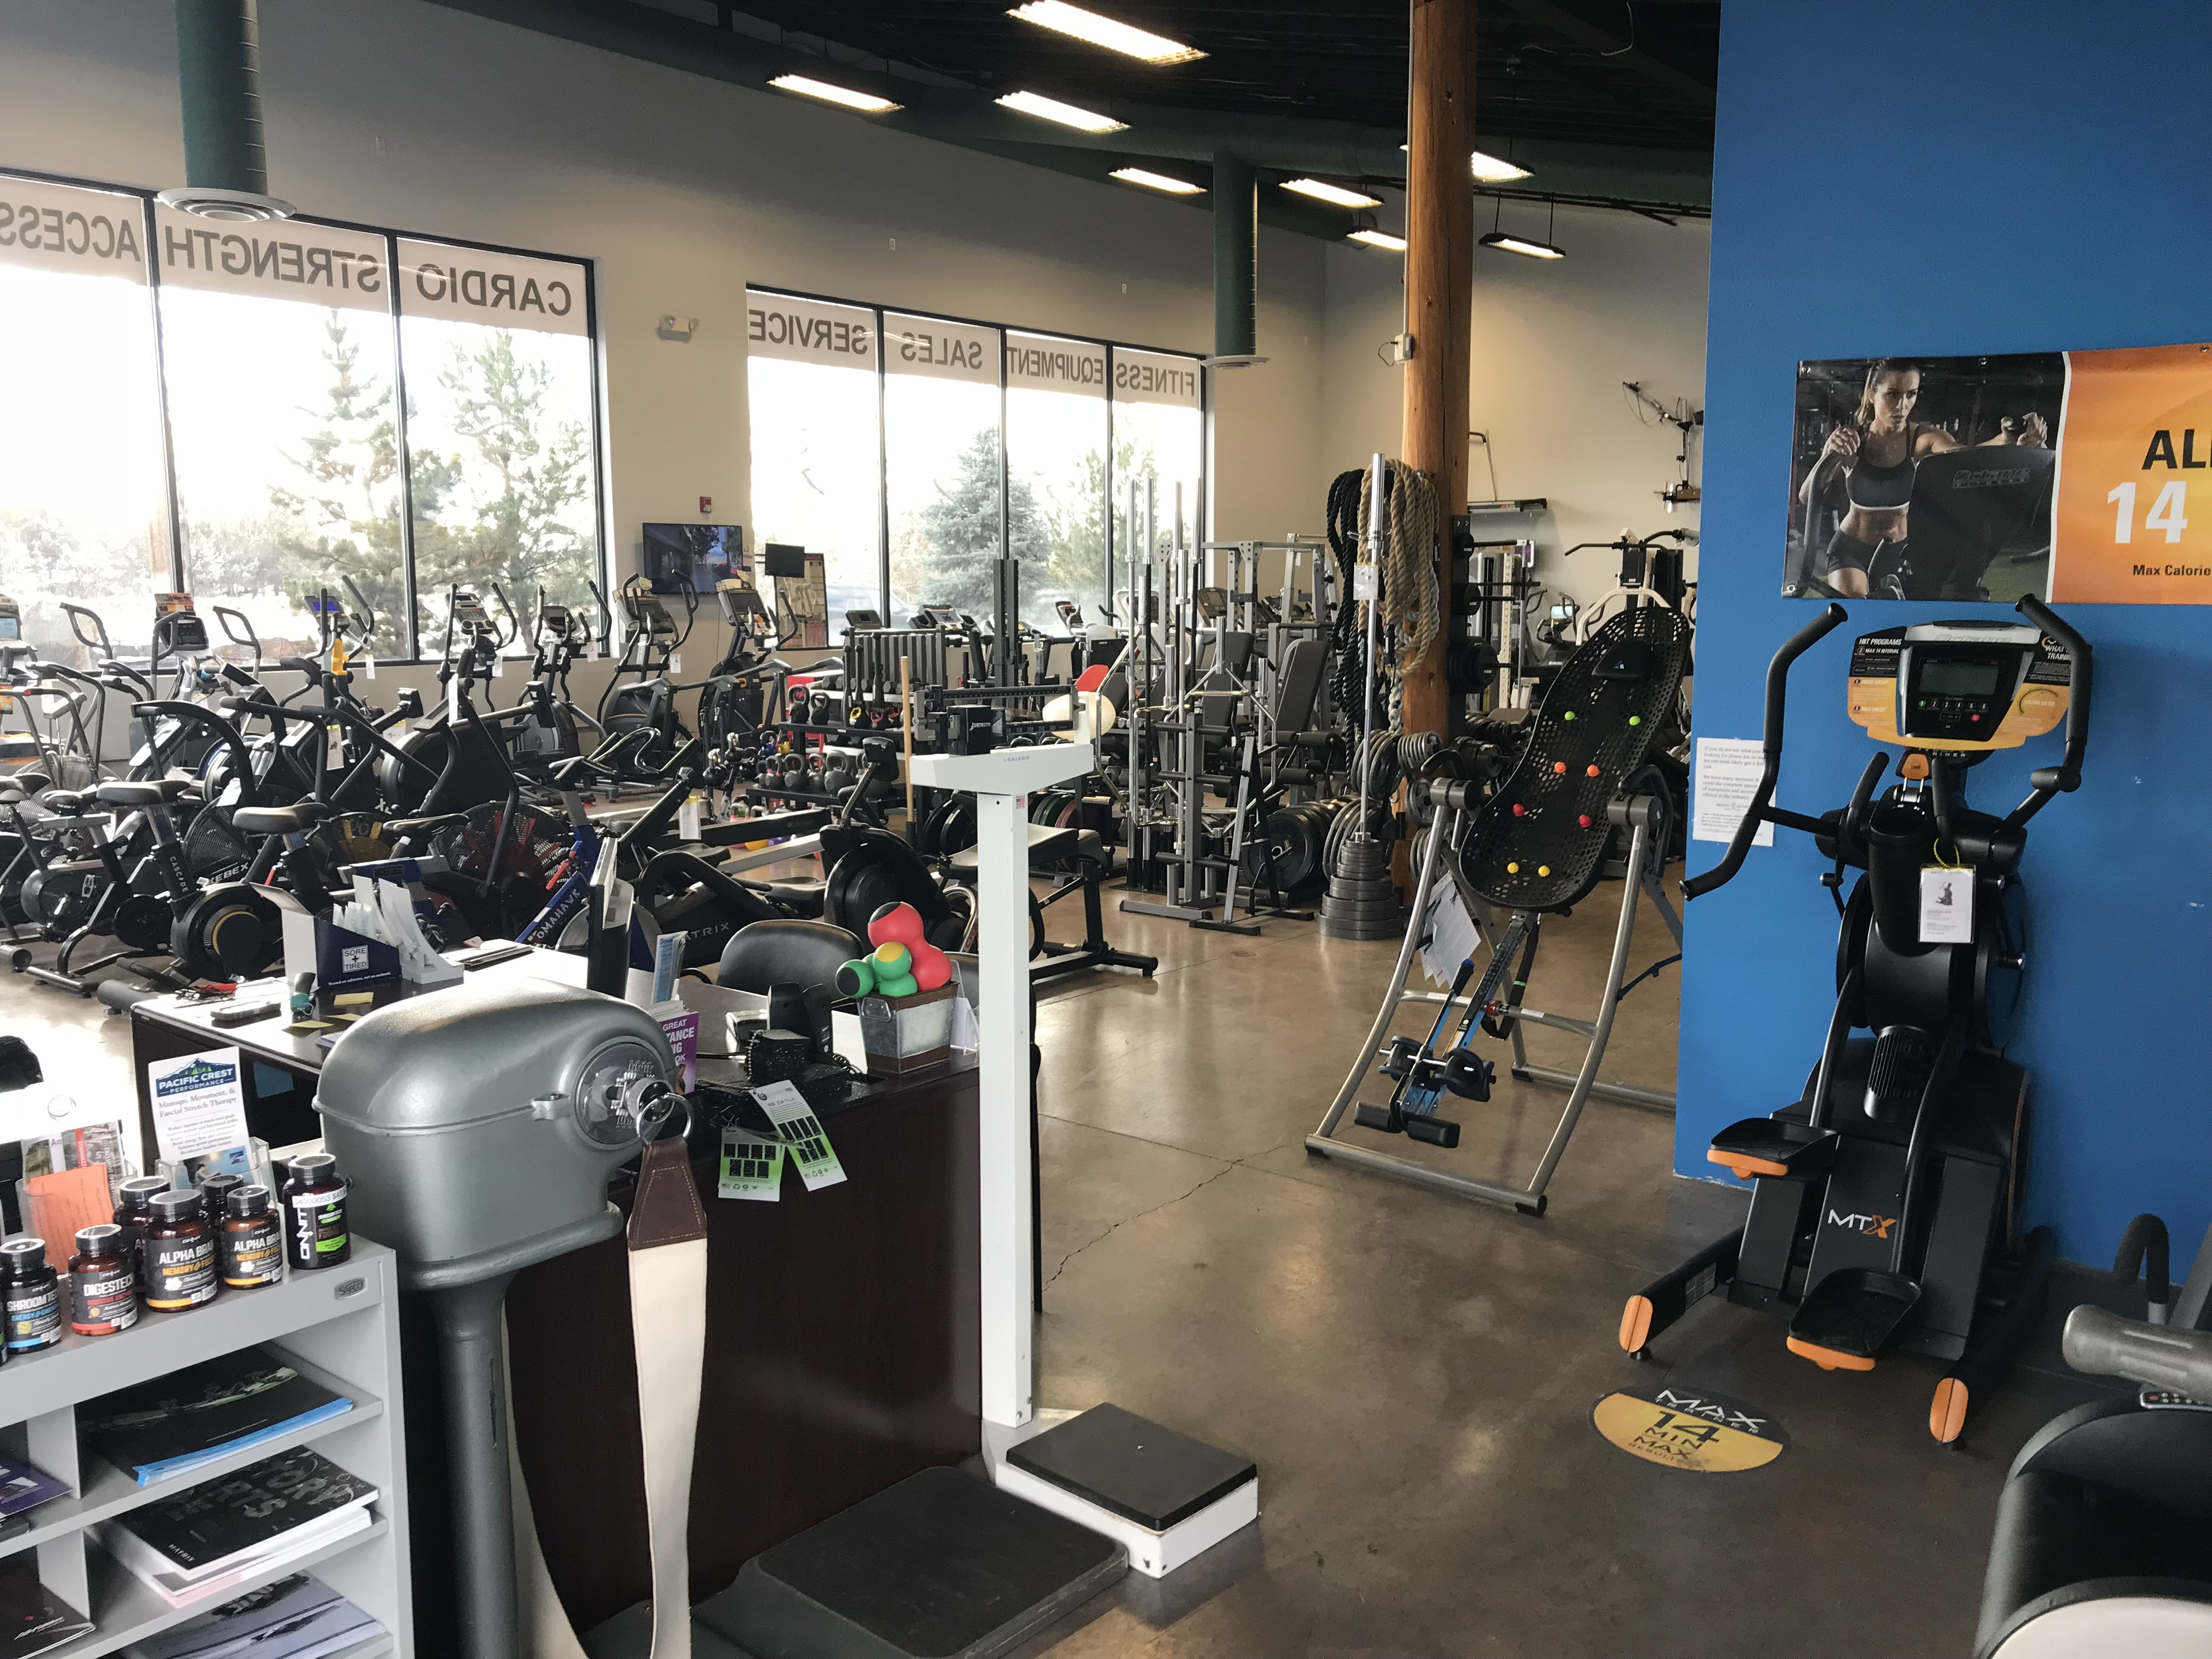 Fitness Equipment Sales and Service Business in Bend, OR